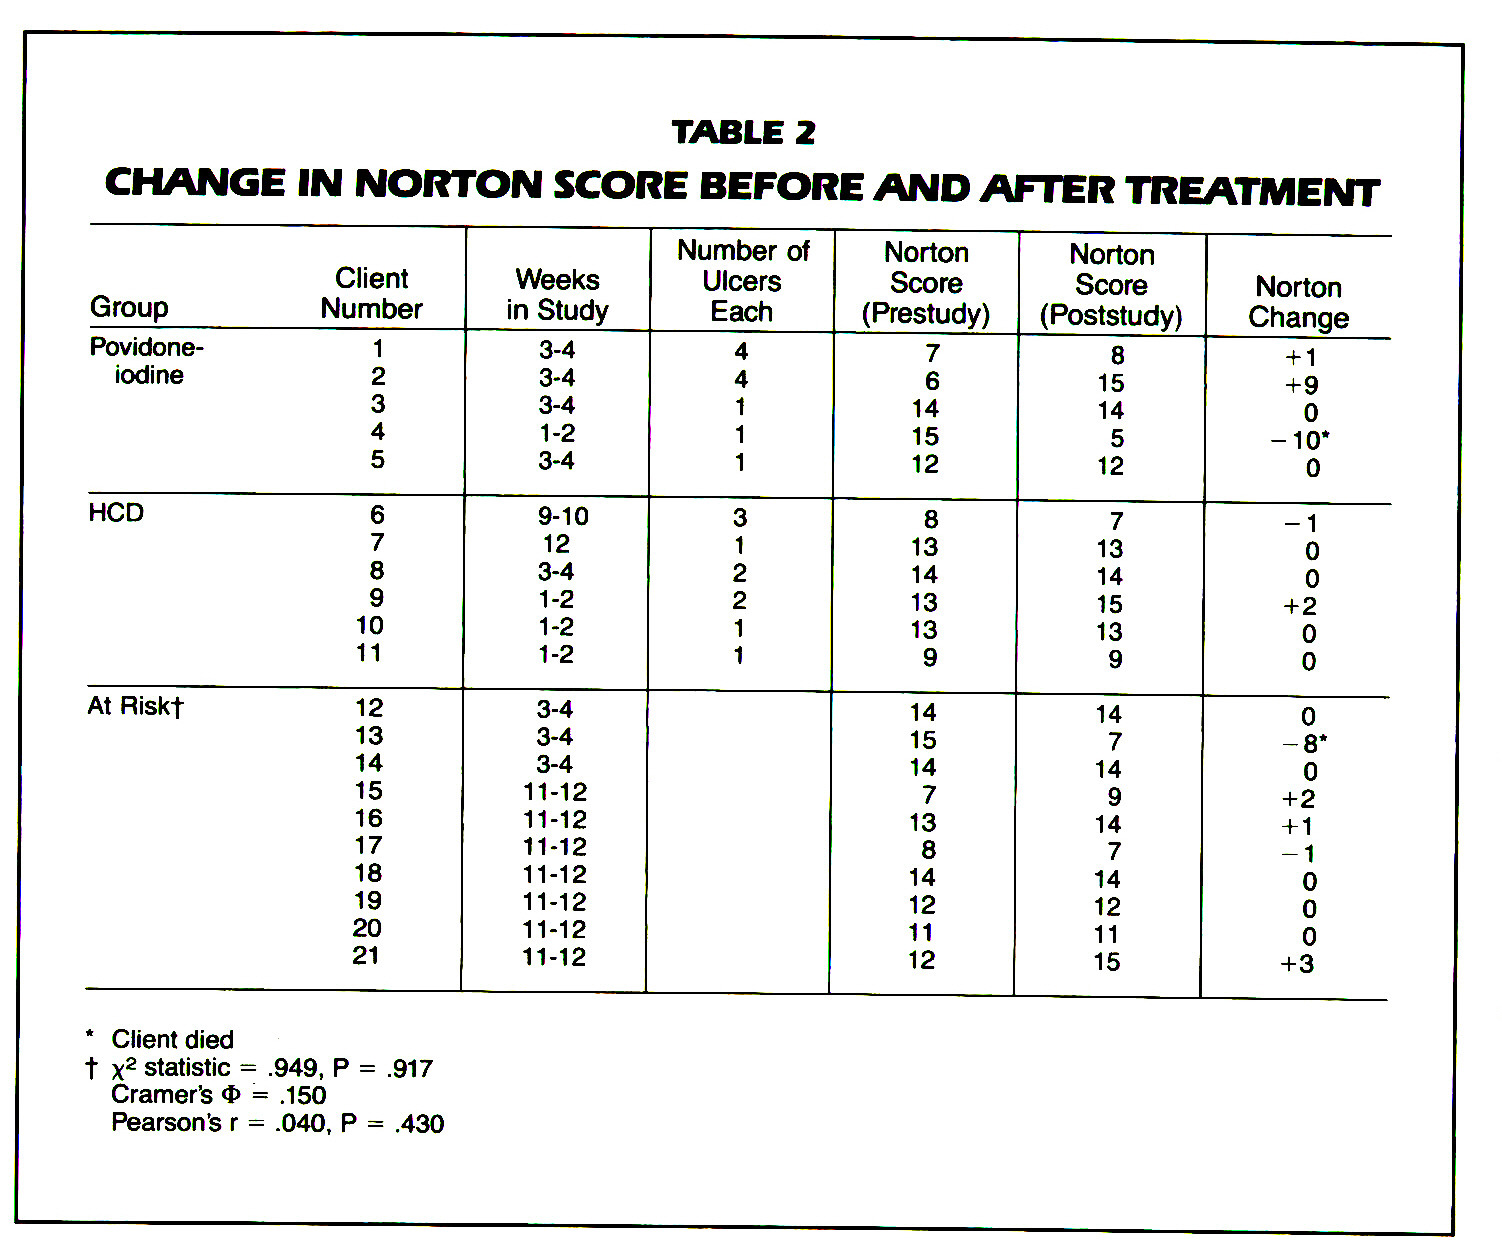 TABLE 2CHANGE IN NORTON SCORE BEFORE AND AFTER TREATMENT